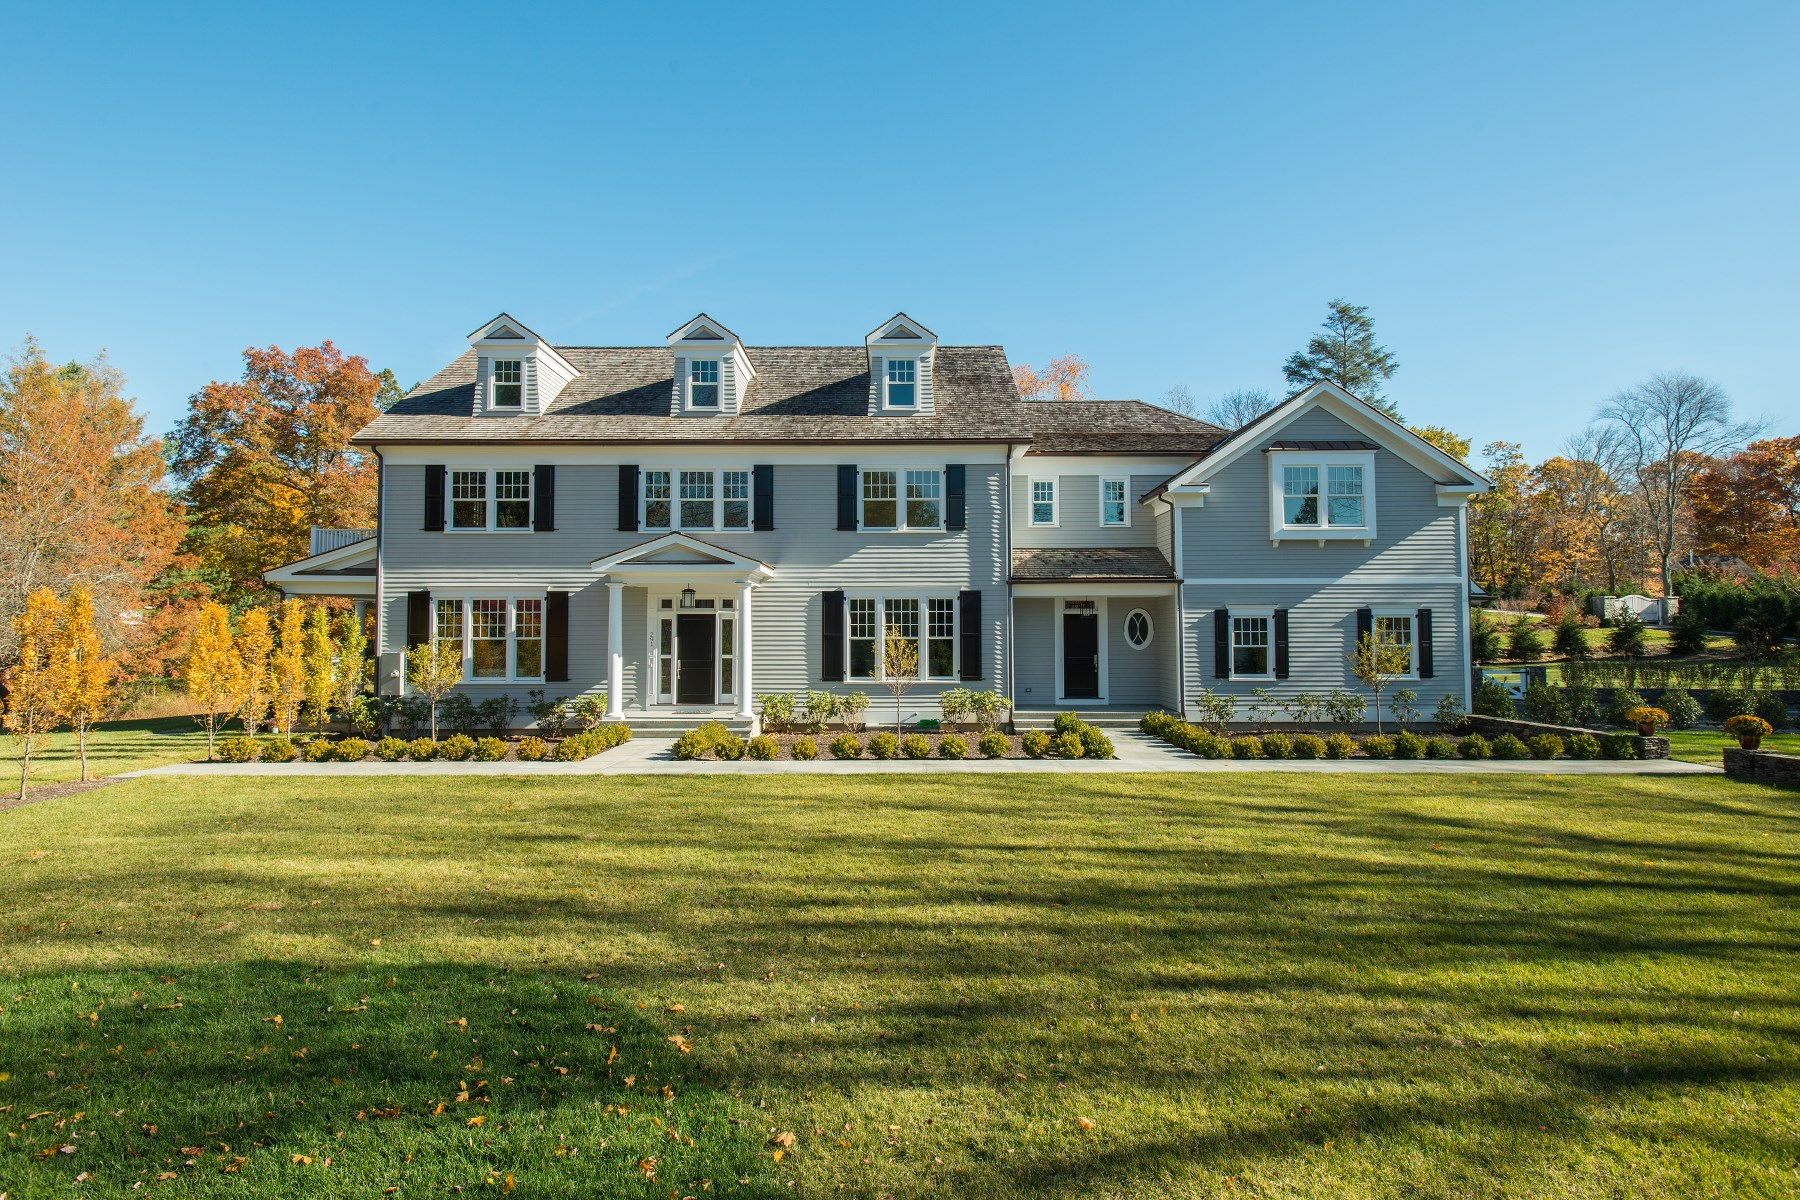 Single Family Home for Sale at Stanwich Road 291 Stanwich Road Mid-Country, Greenwich, Connecticut, 06830 United States